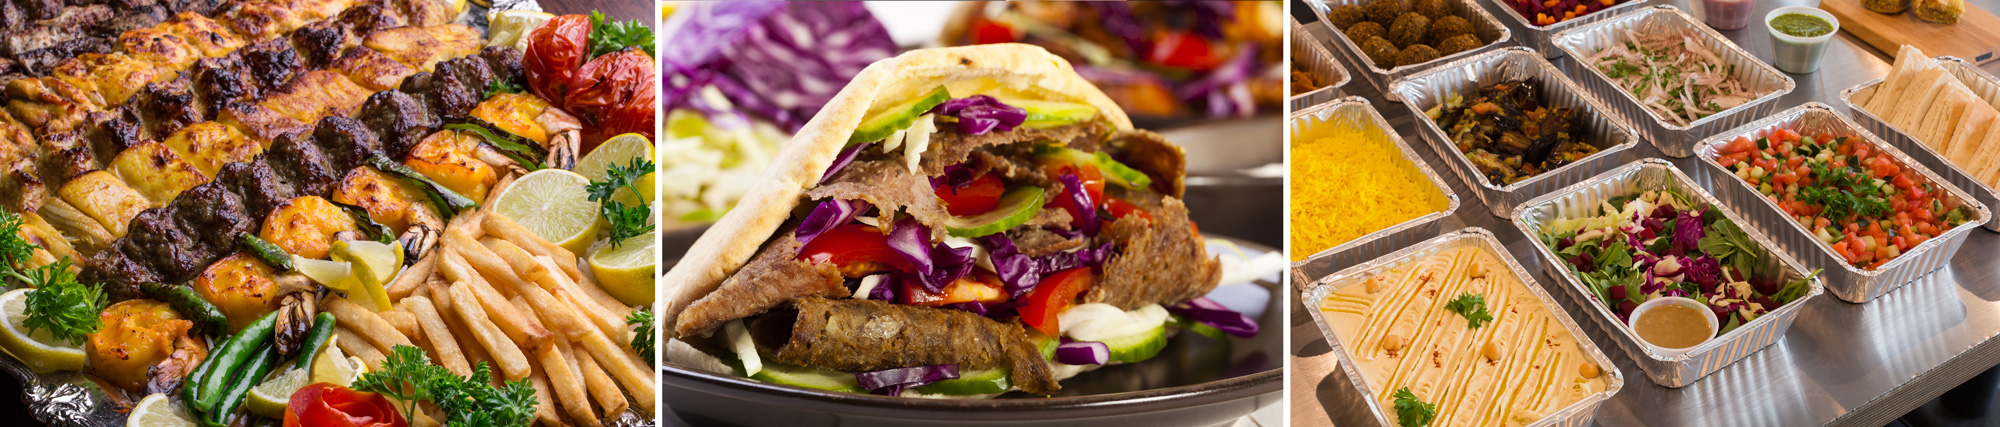 the-shawarma-guys-catering-intro-image.jpg